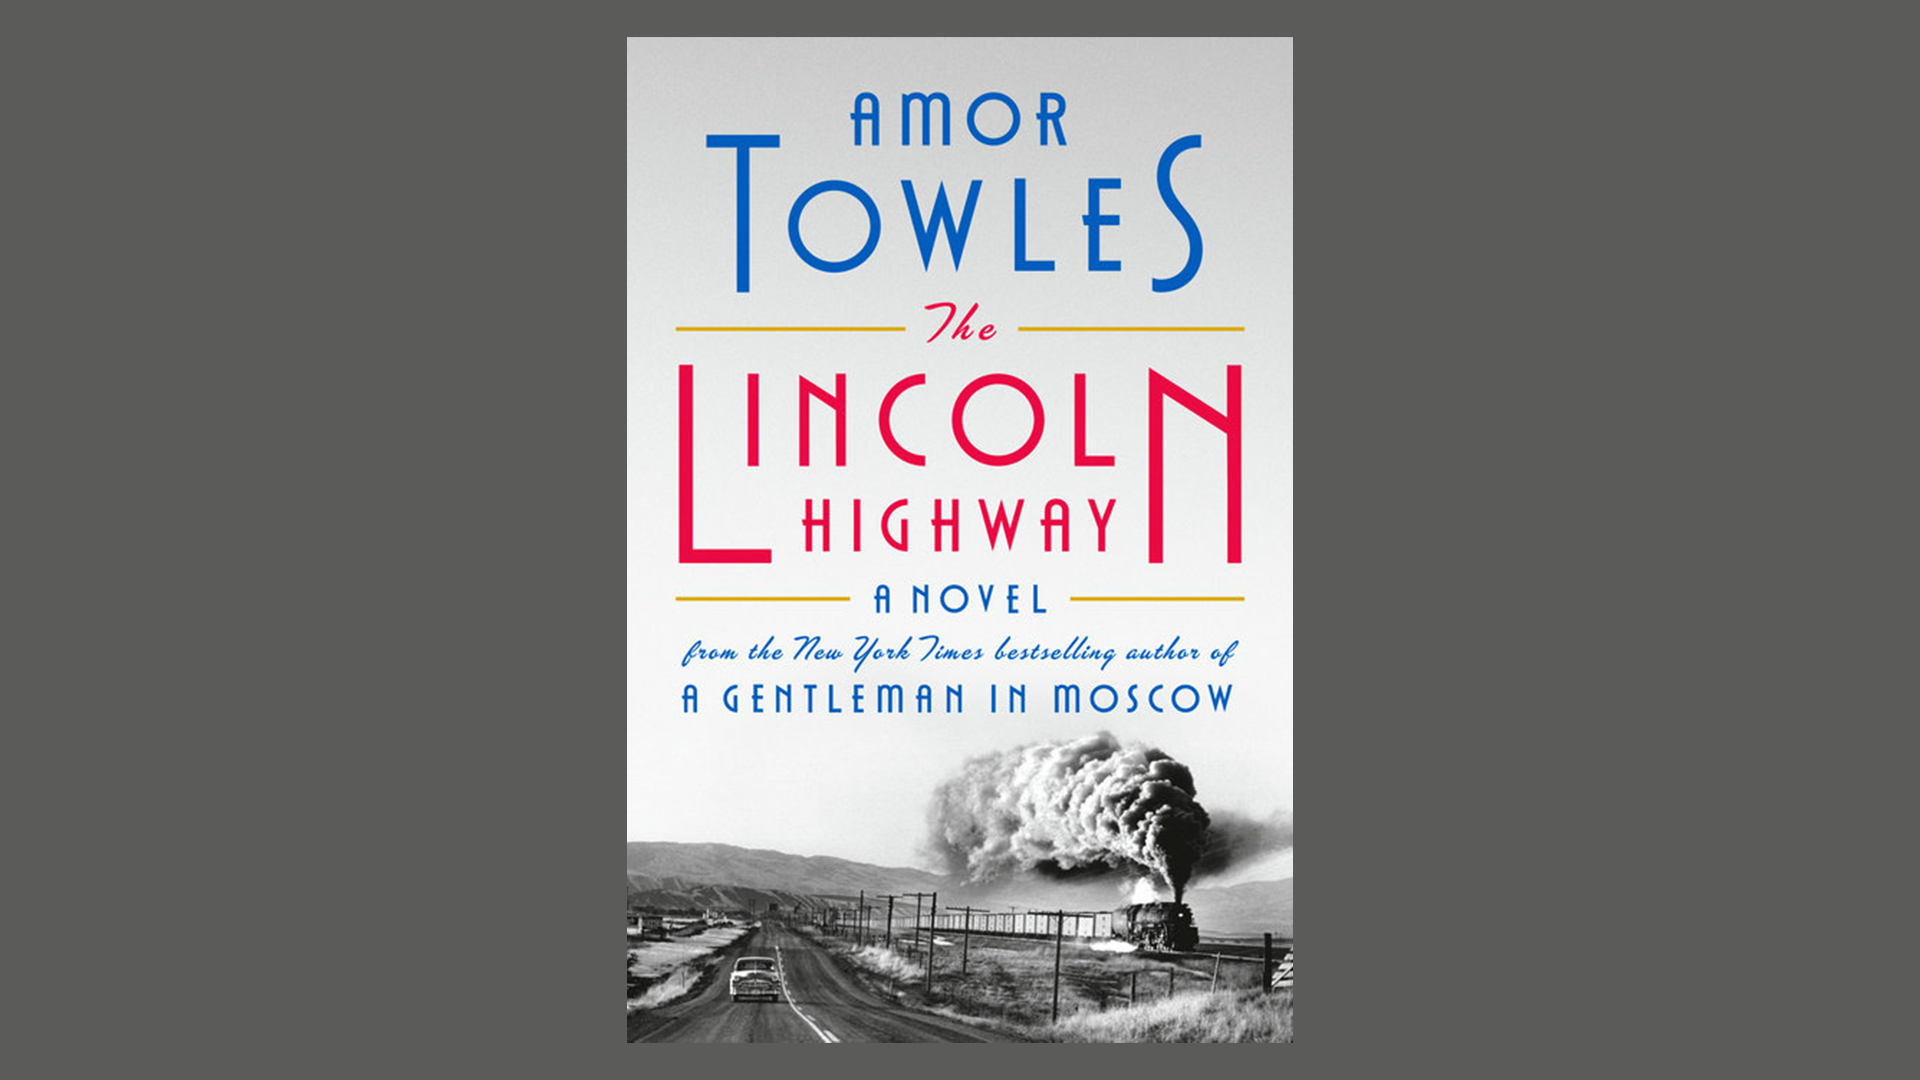 """Book cover of """"The Lincoln Highway"""" by Amor Towles"""